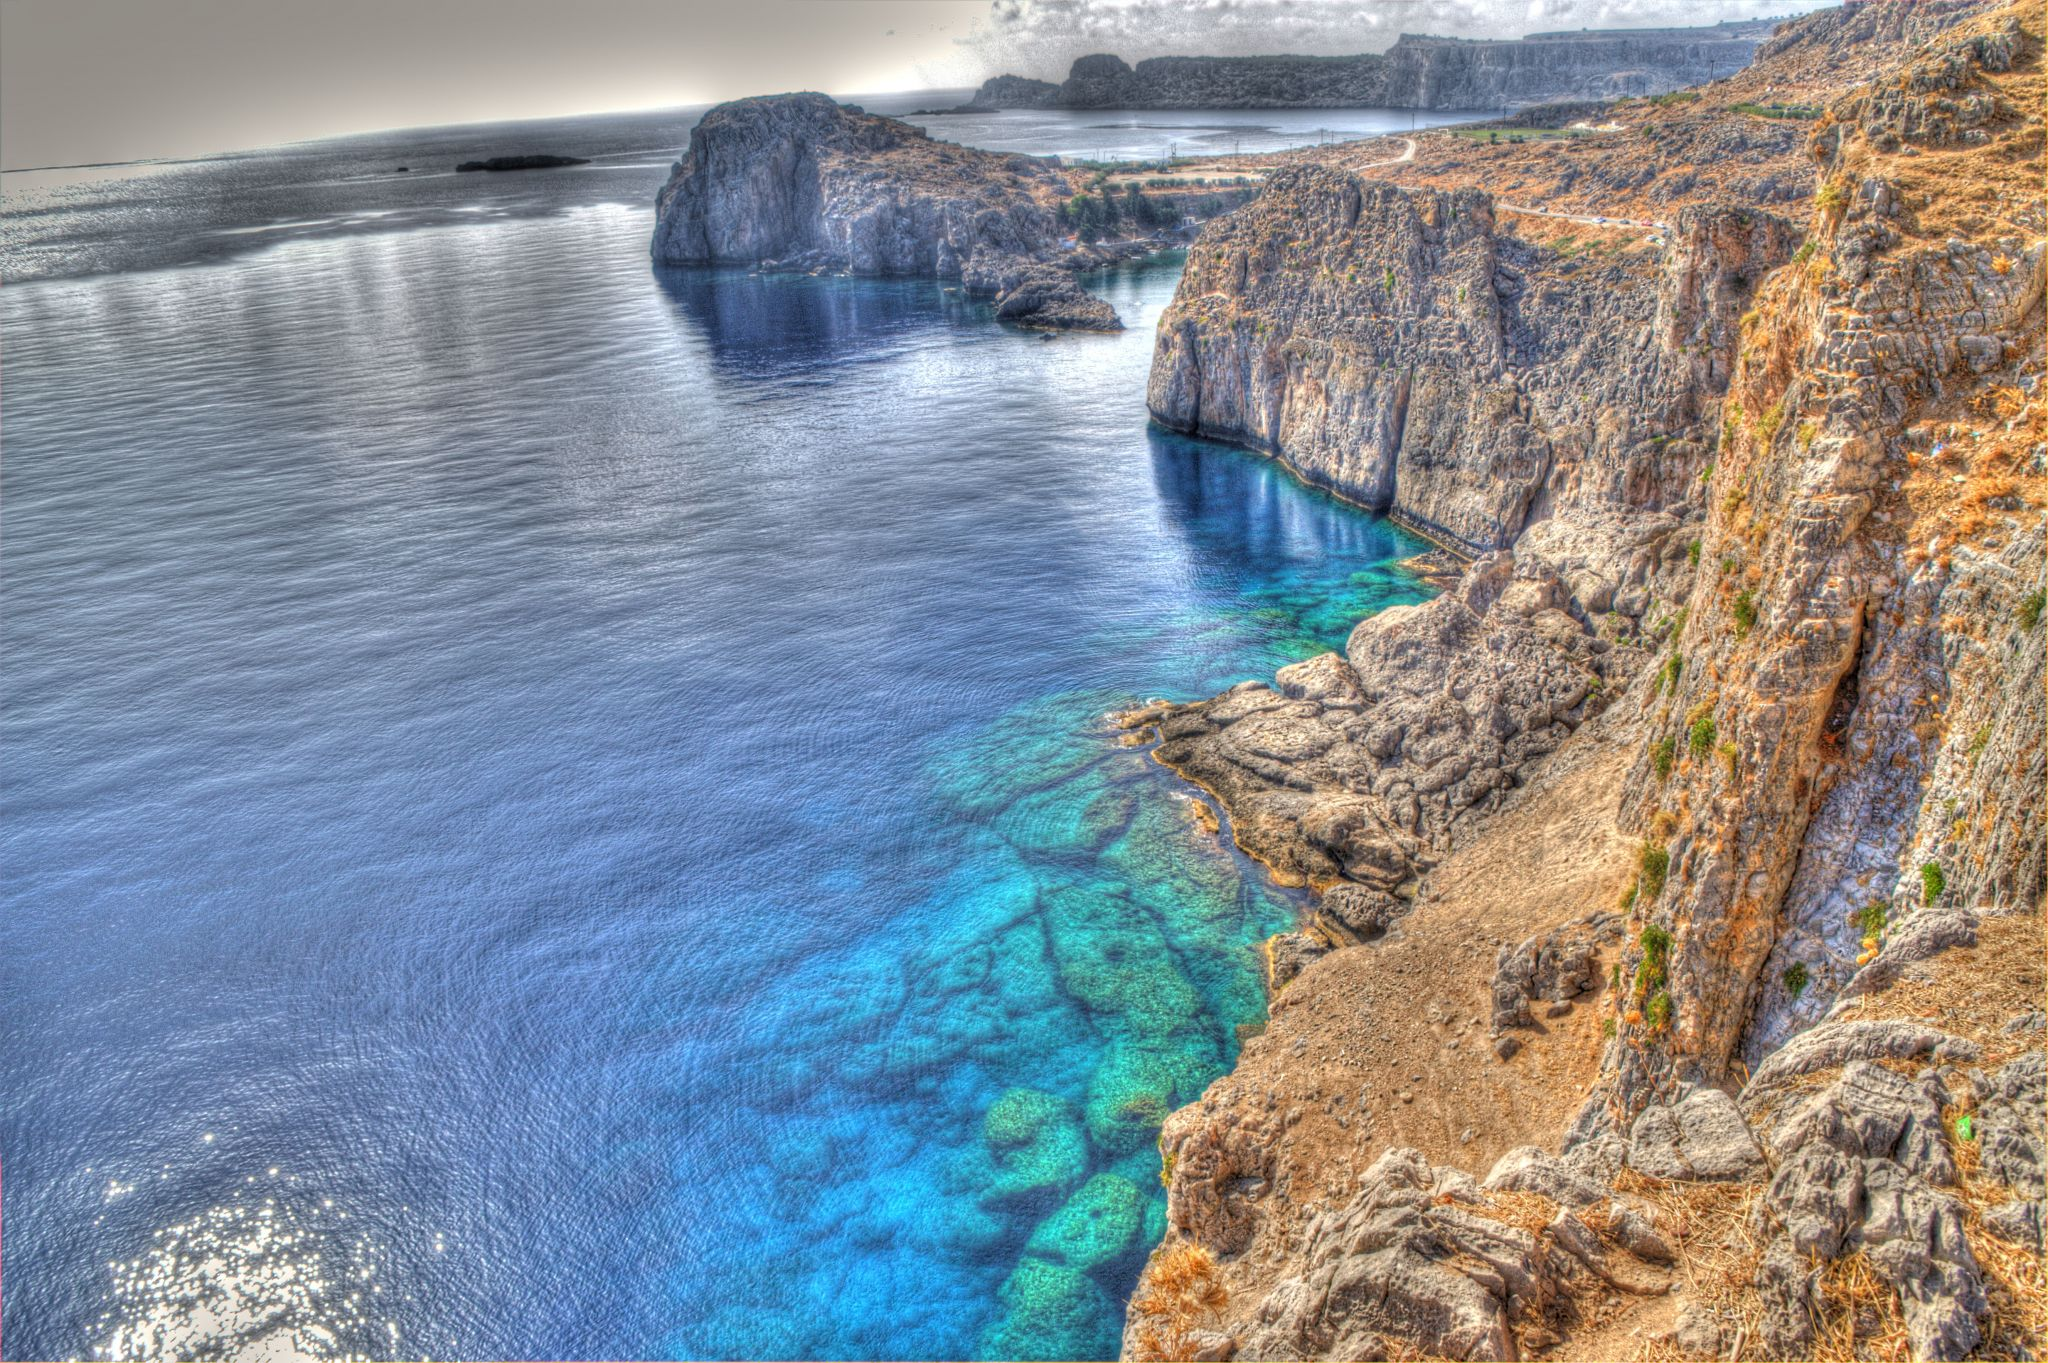 View from the cliffs of Lindos, Rhodes Island, Greece